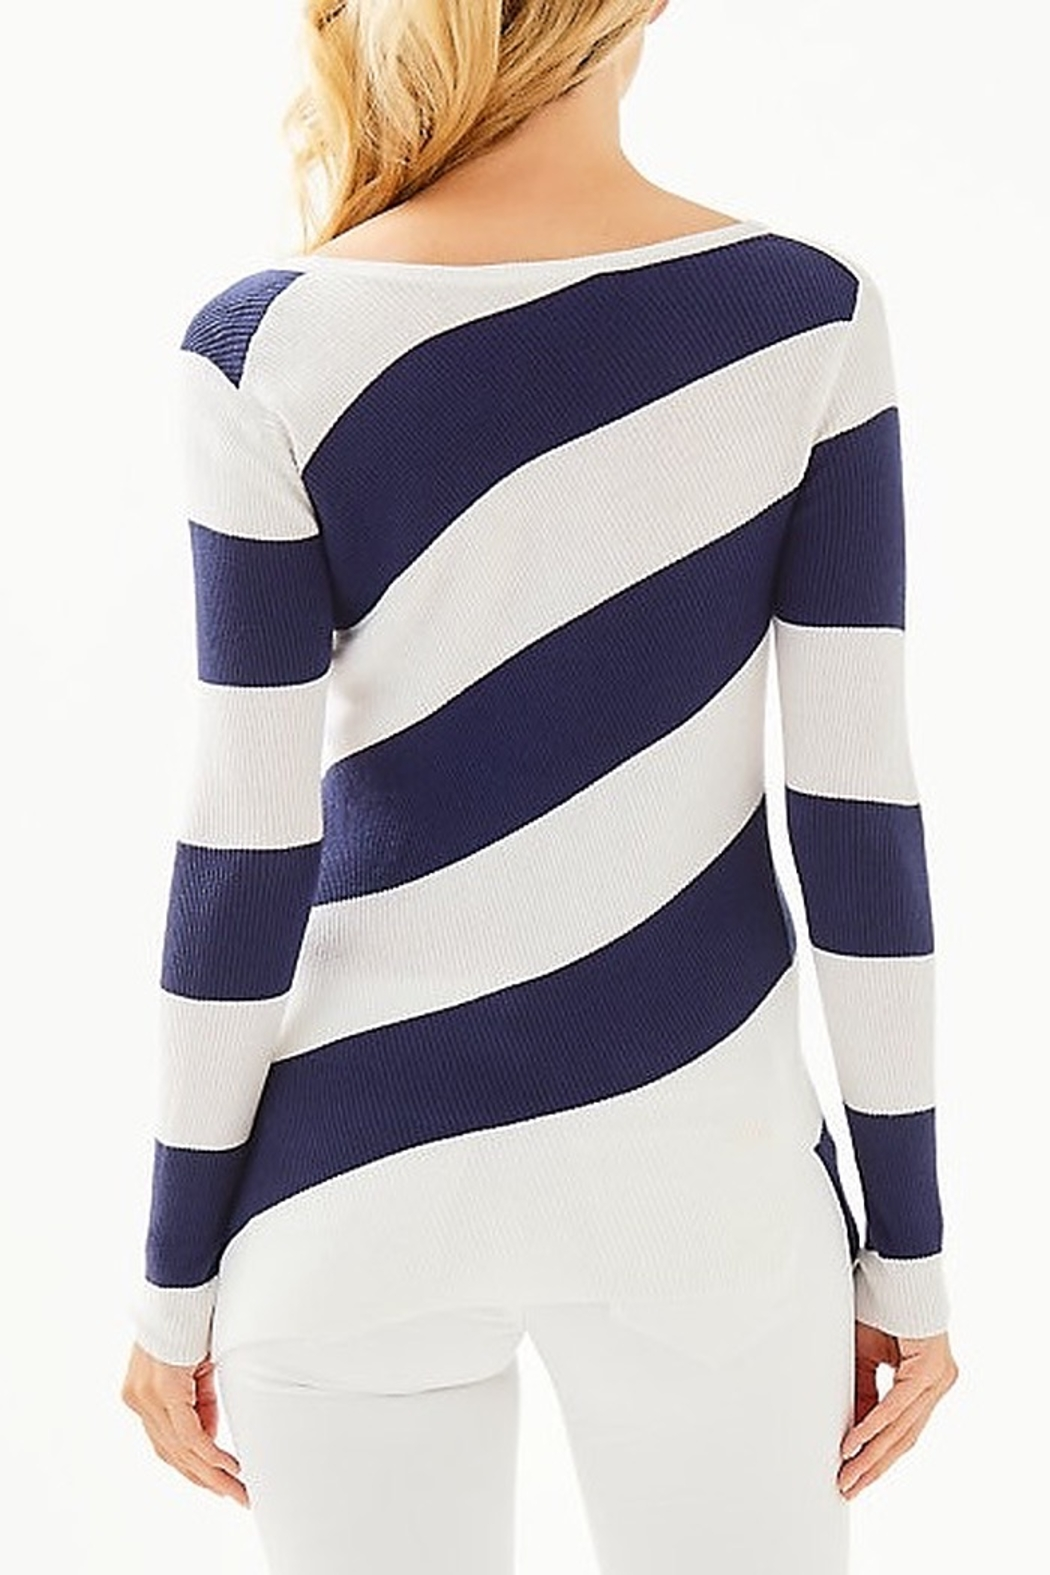 Lilly Pulitzer Cadee Striped Sweater - Front Full Image